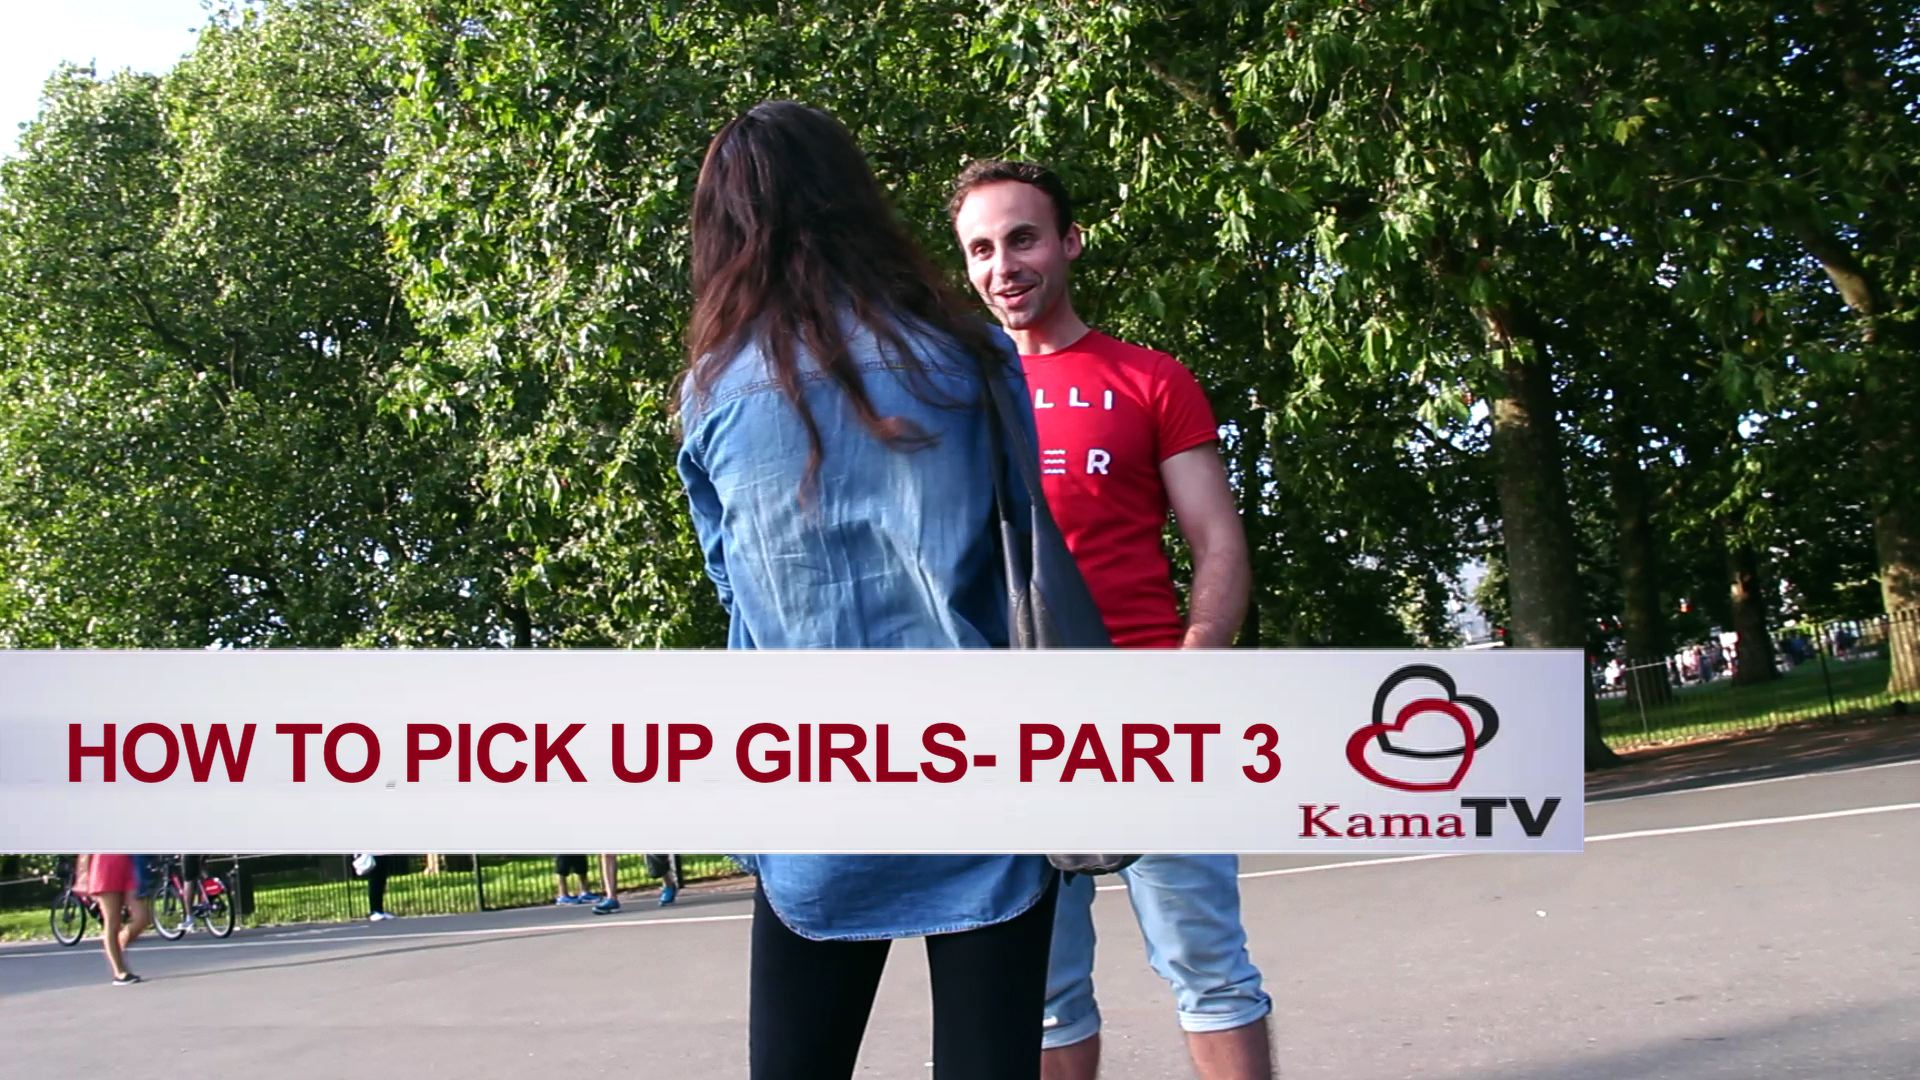 How to pick up girls - PART 3